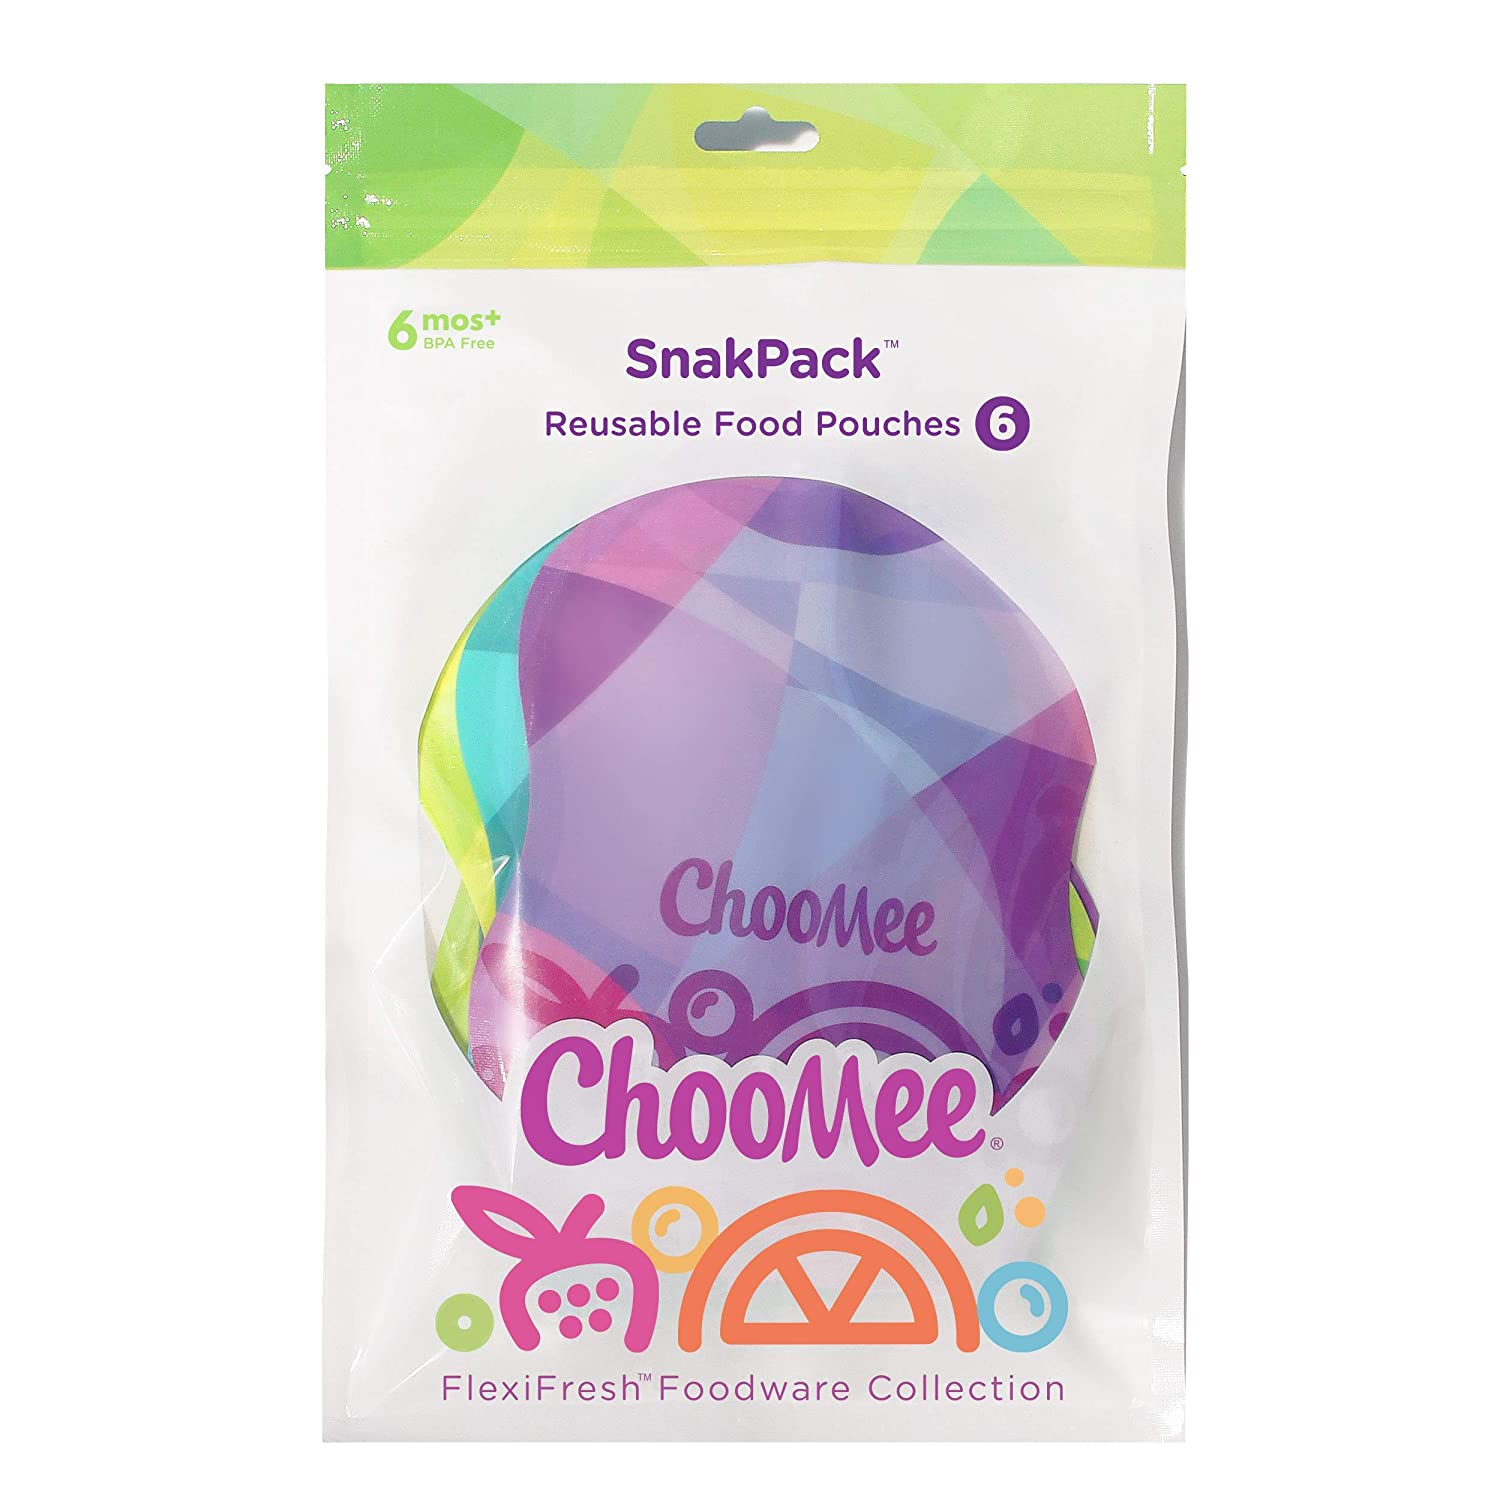 ChooMee Smoothie Project by Weelicious + SnakPack Reusable Food Pouches - New!   6 CT, 8 oz   TropiColor Design, Ideal for Purees, Smoothie Blends and Baby Food